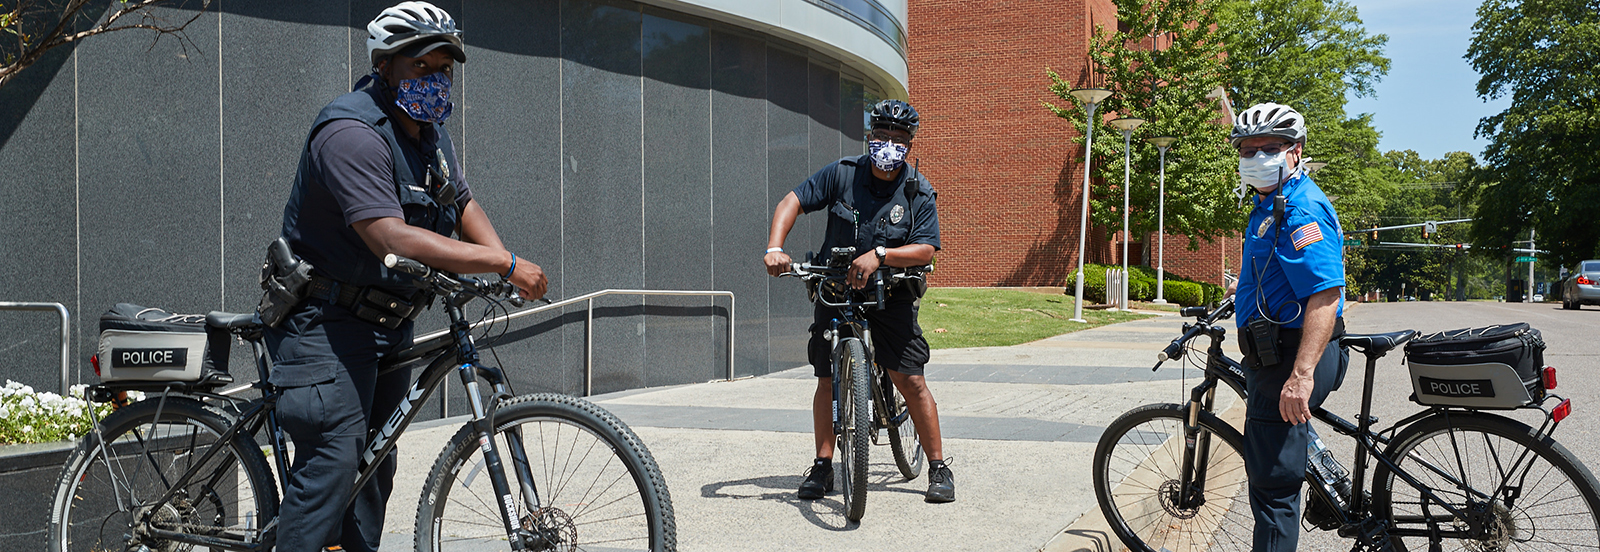 Police Officers patrolling on bike pose for a picture wearing their masks